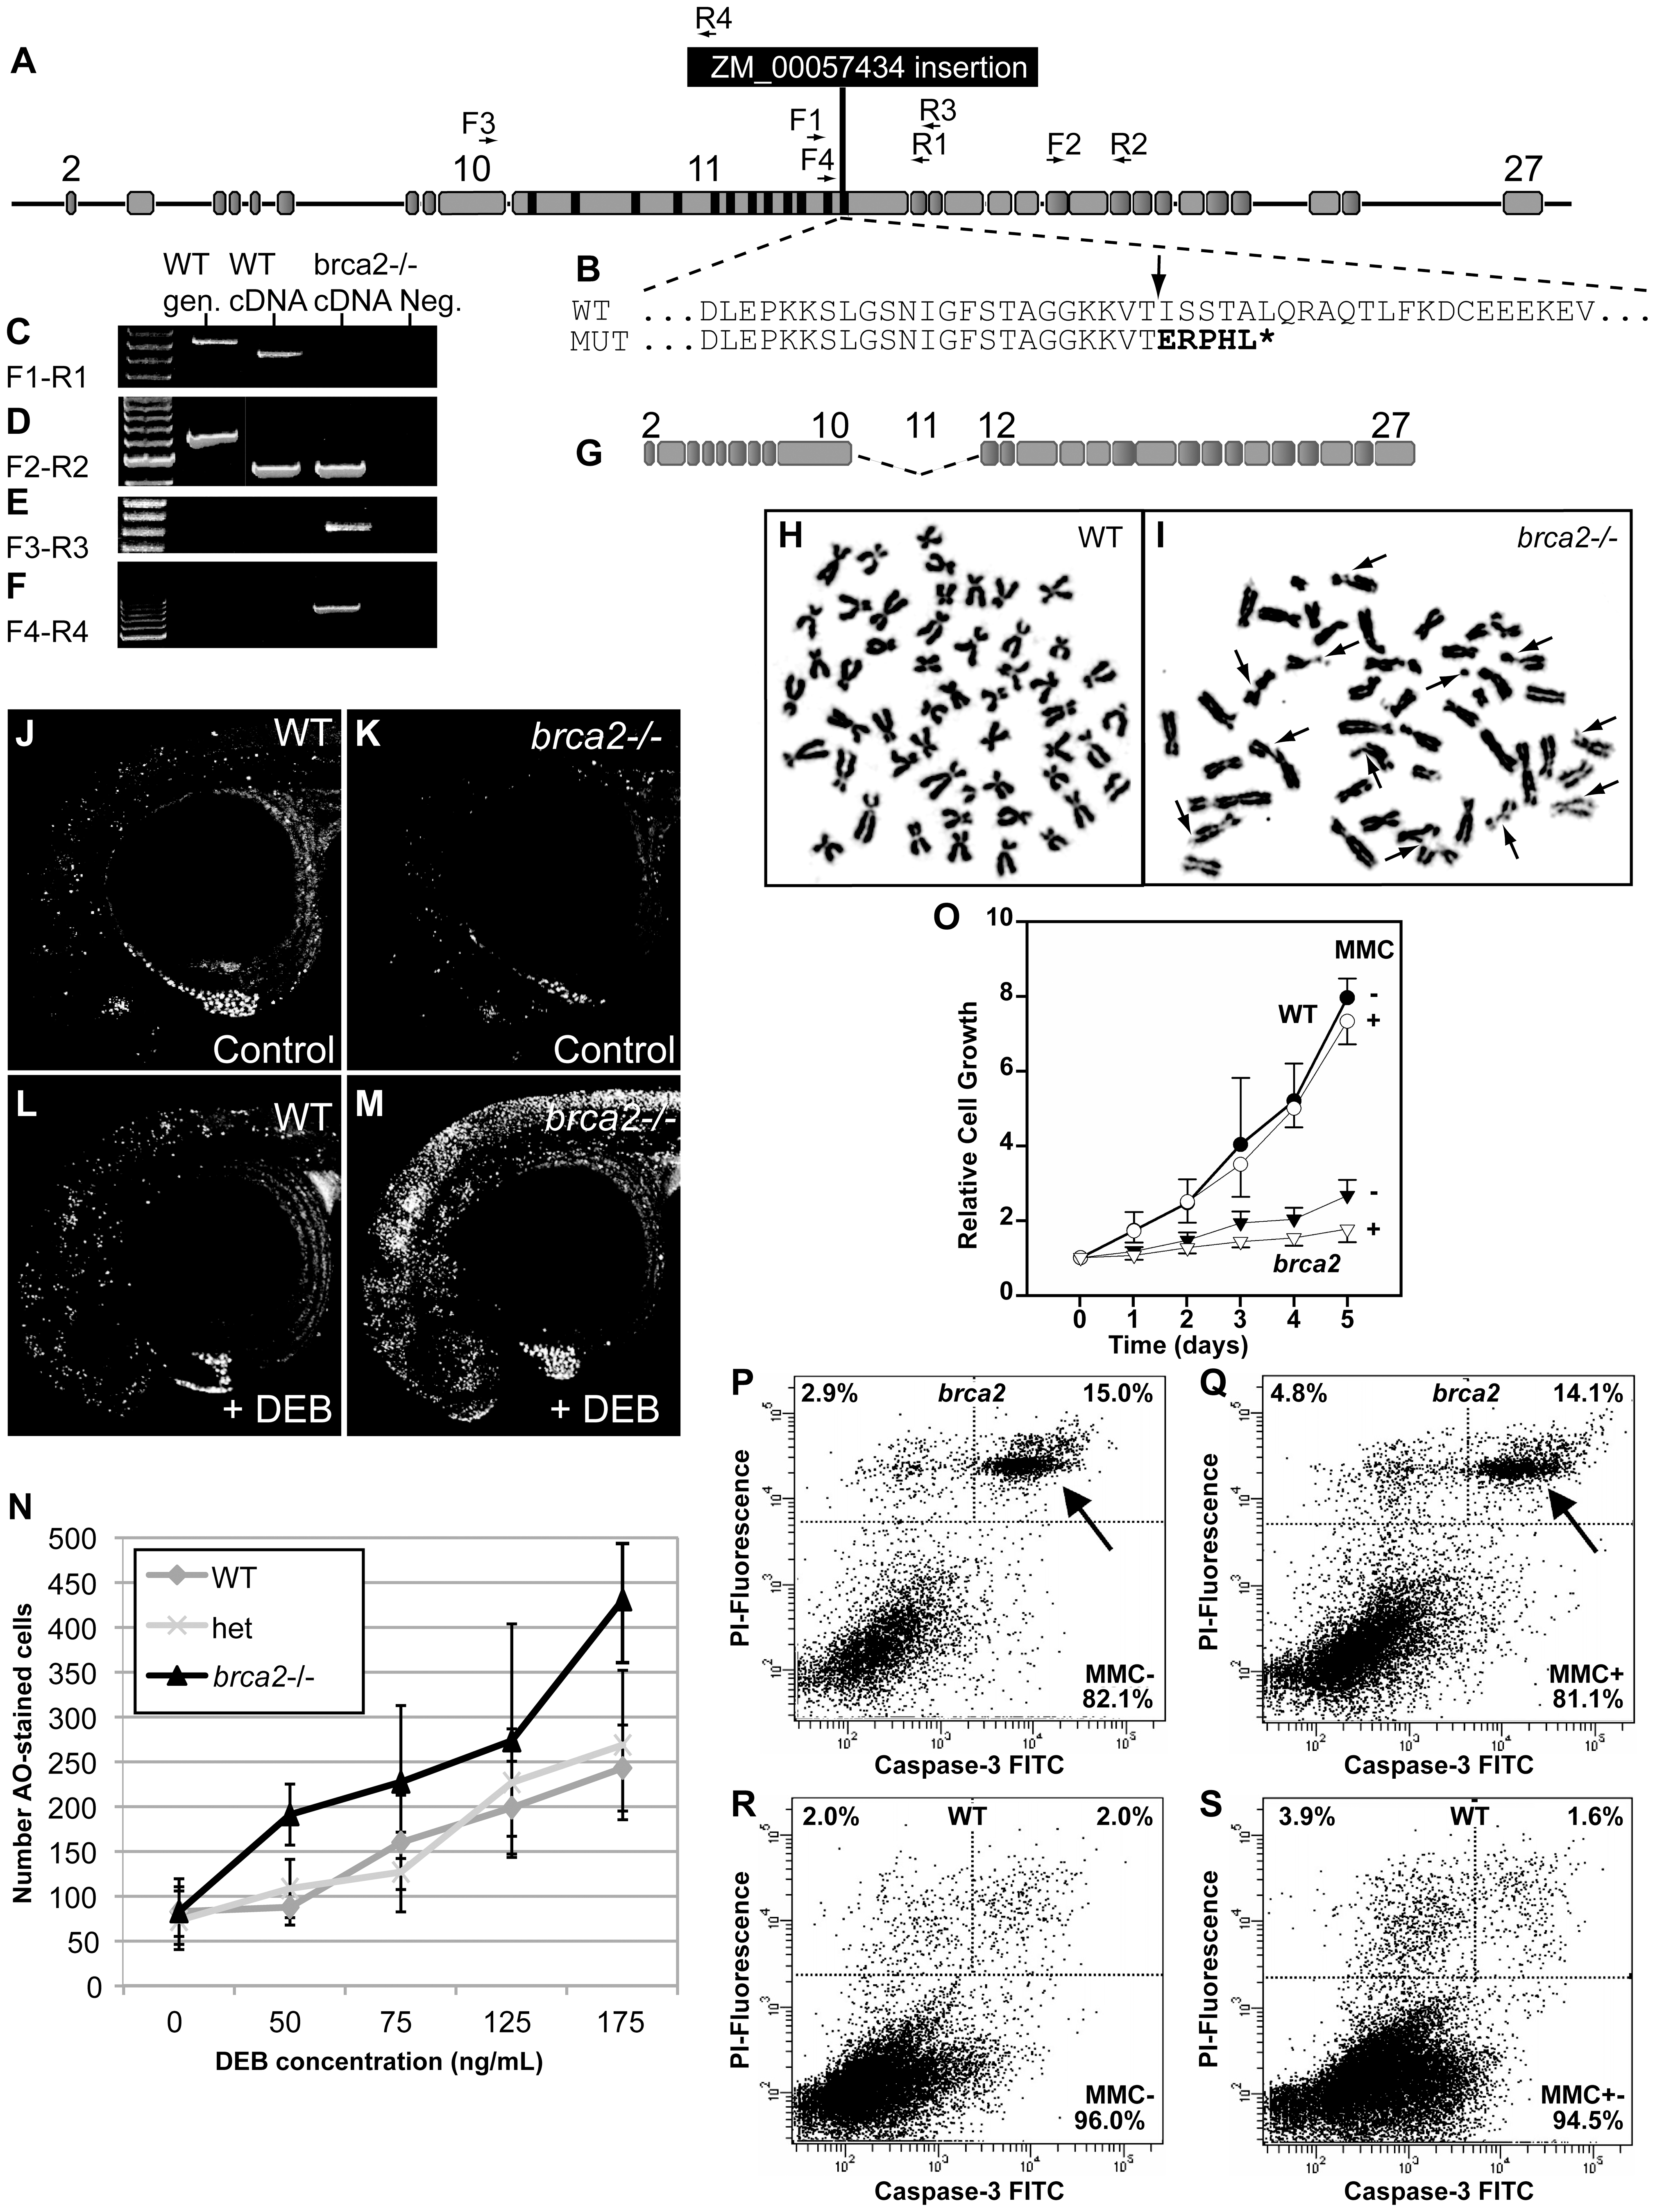 A zebrafish <i>brca2</i> insertional mutant reveals a role for <i>brca2</i> in zebrafish genome stability and cell growth.